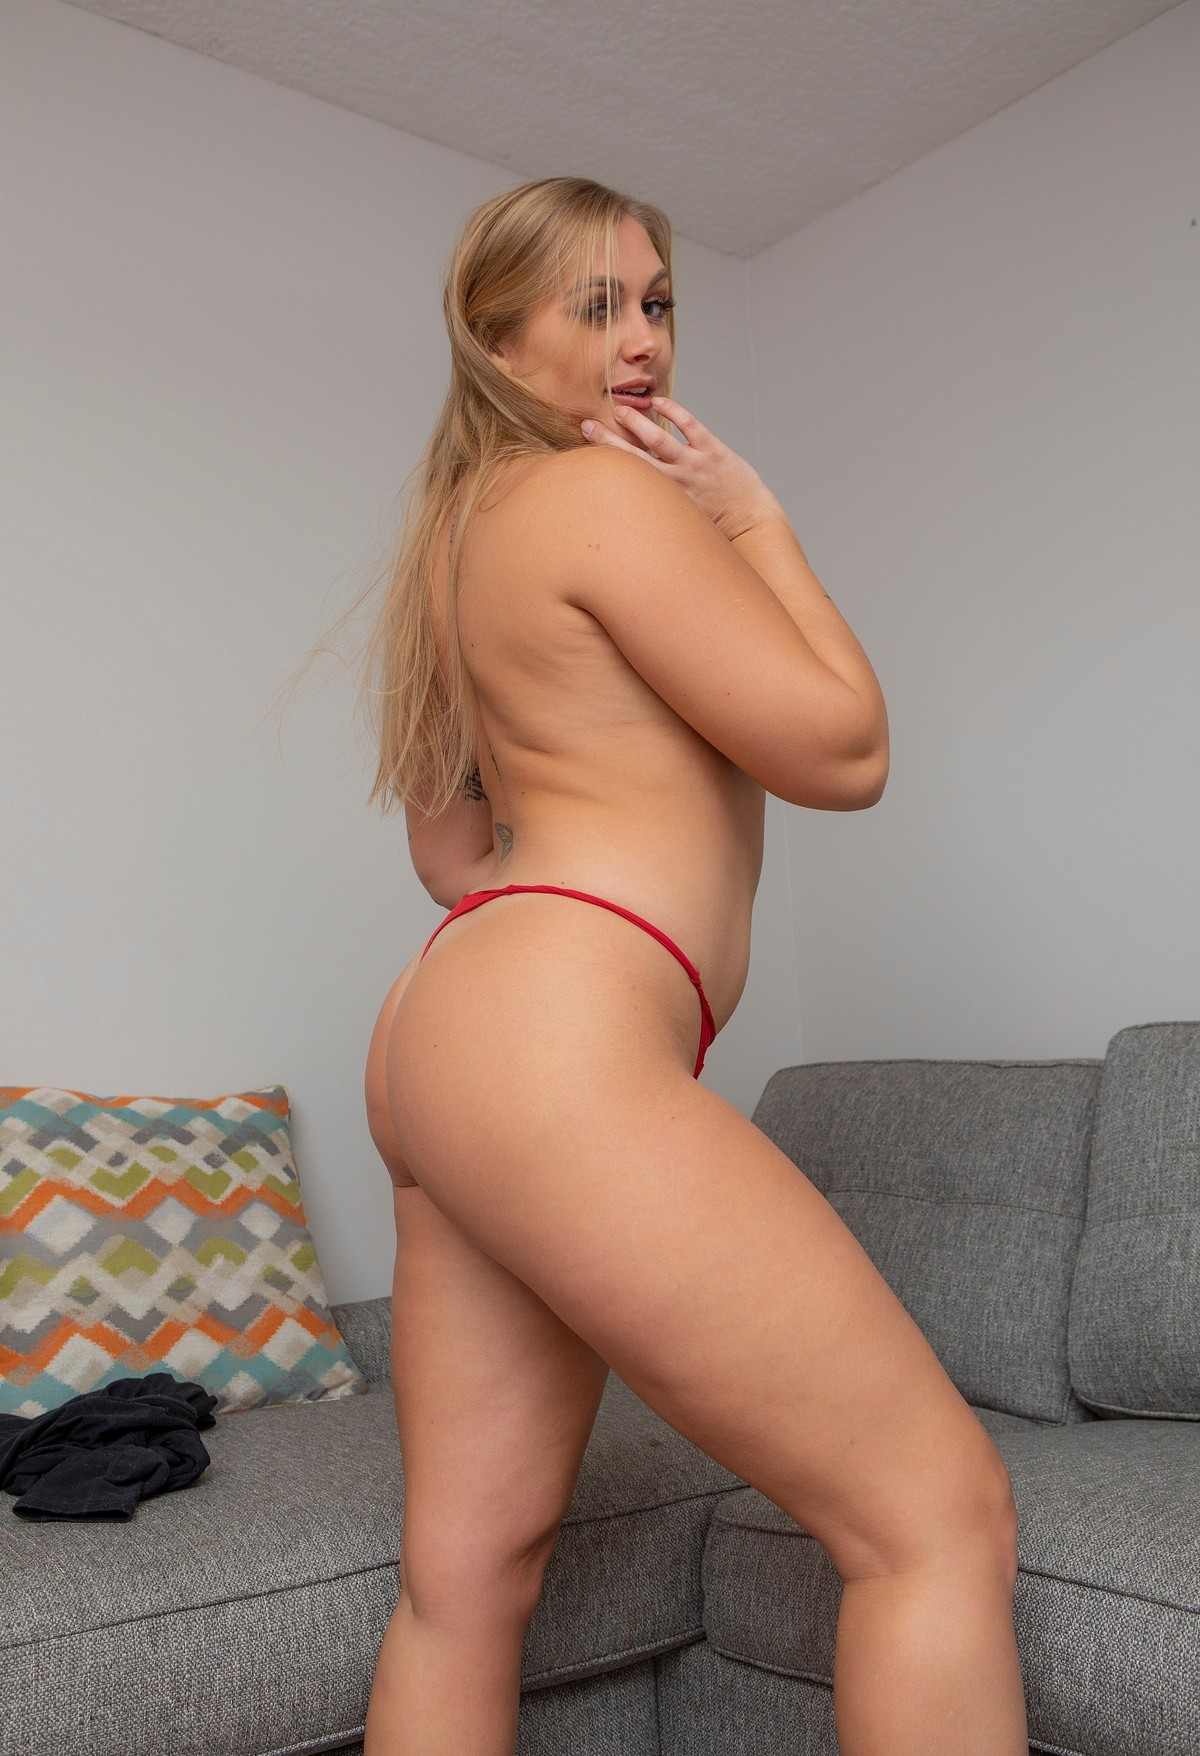 Penny Lund Leaked Pics